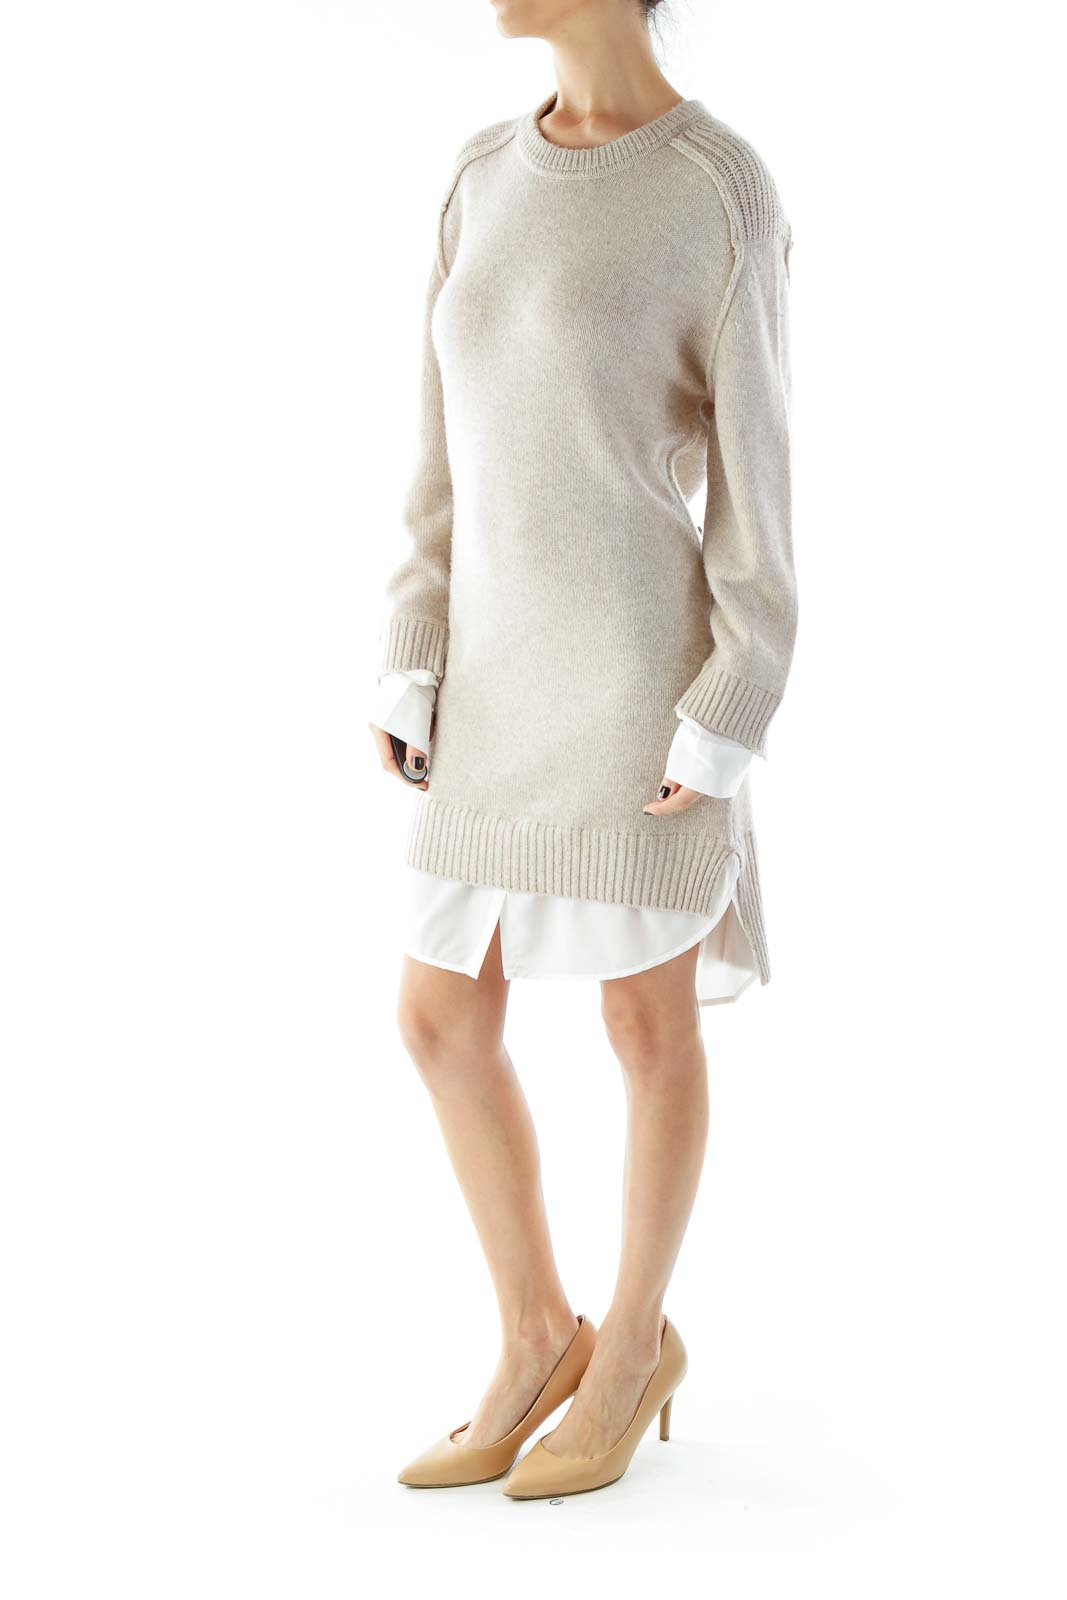 Beige White Layered Knit Dress